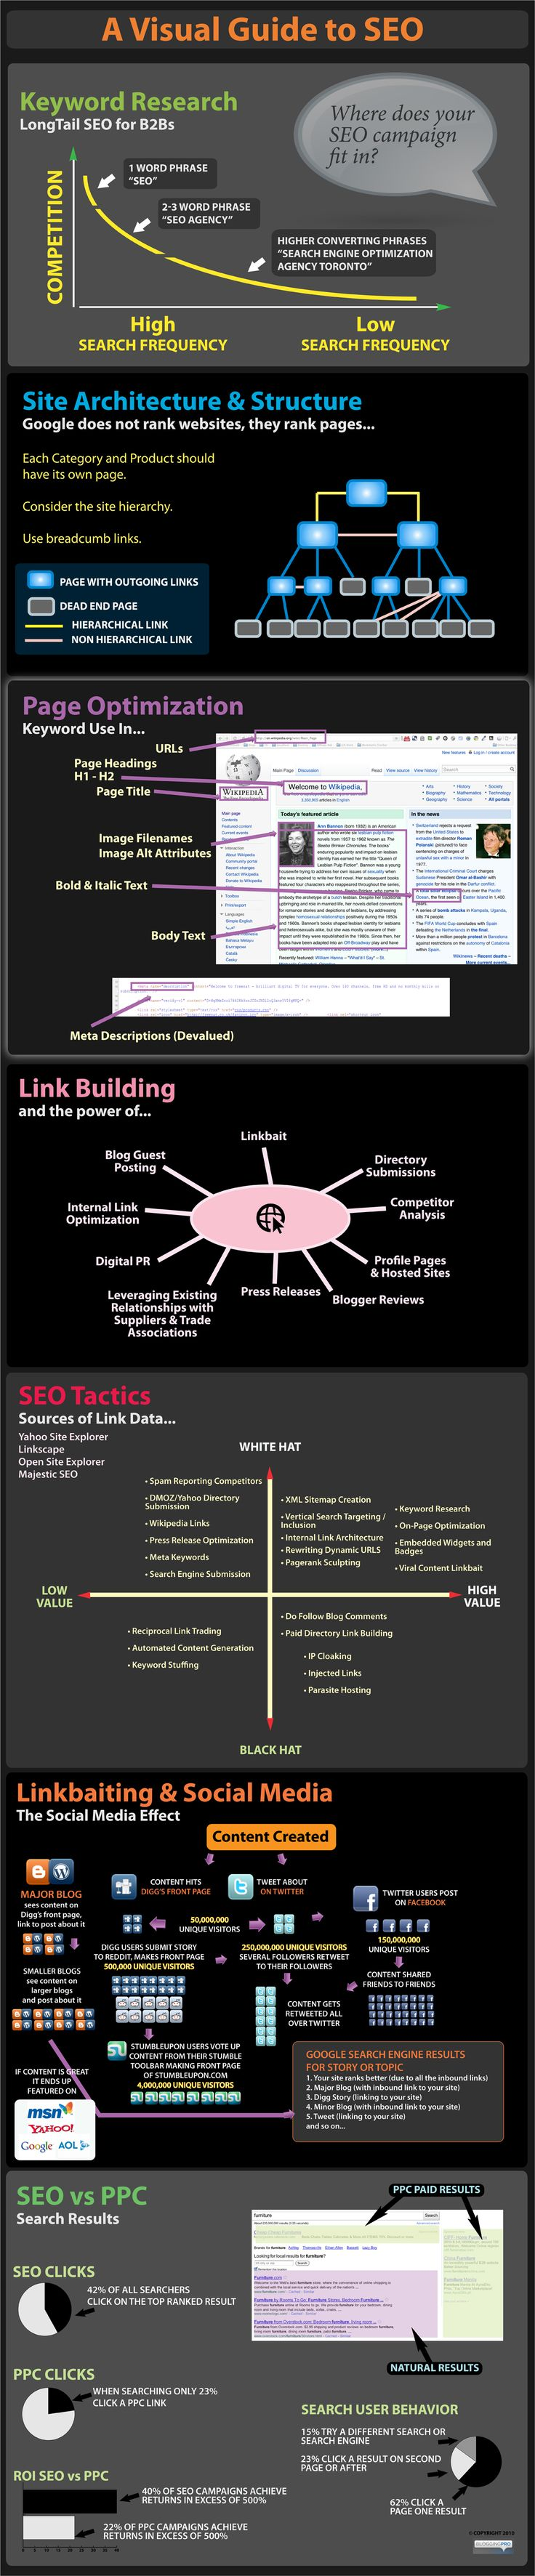 A Visual guide to SEO - correct link